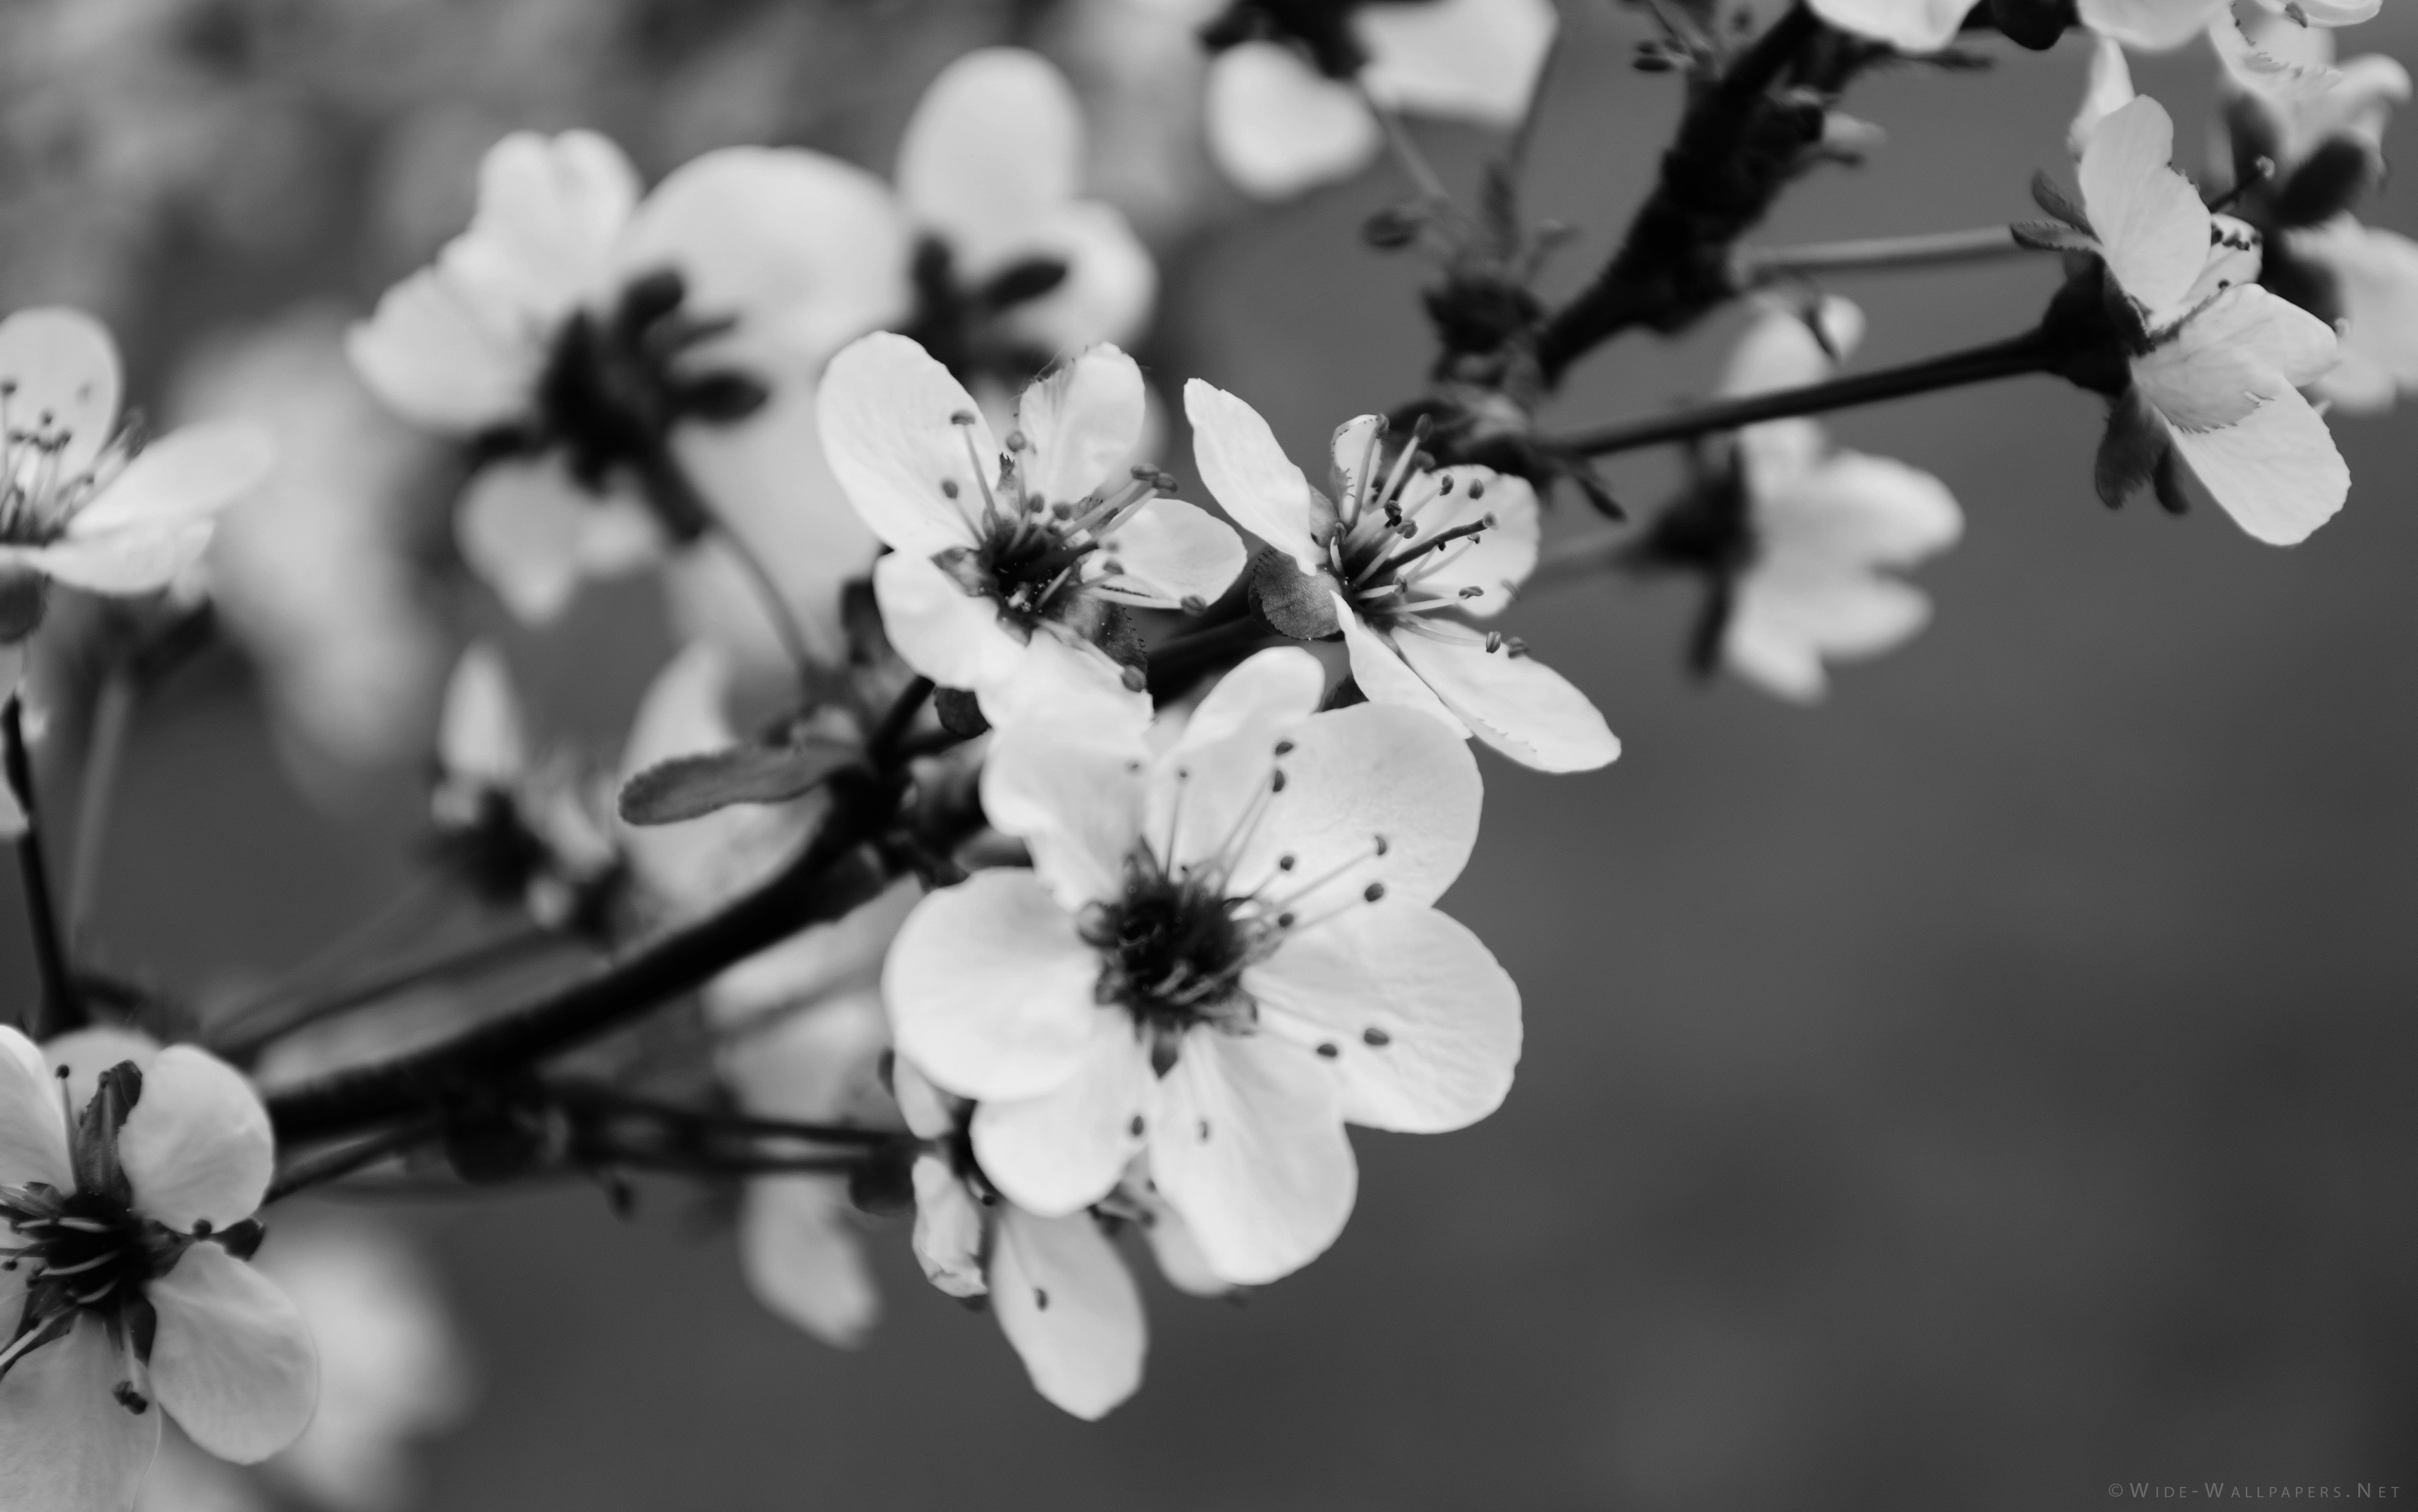 wallpaper-black-and-white-flowers-images-gallery